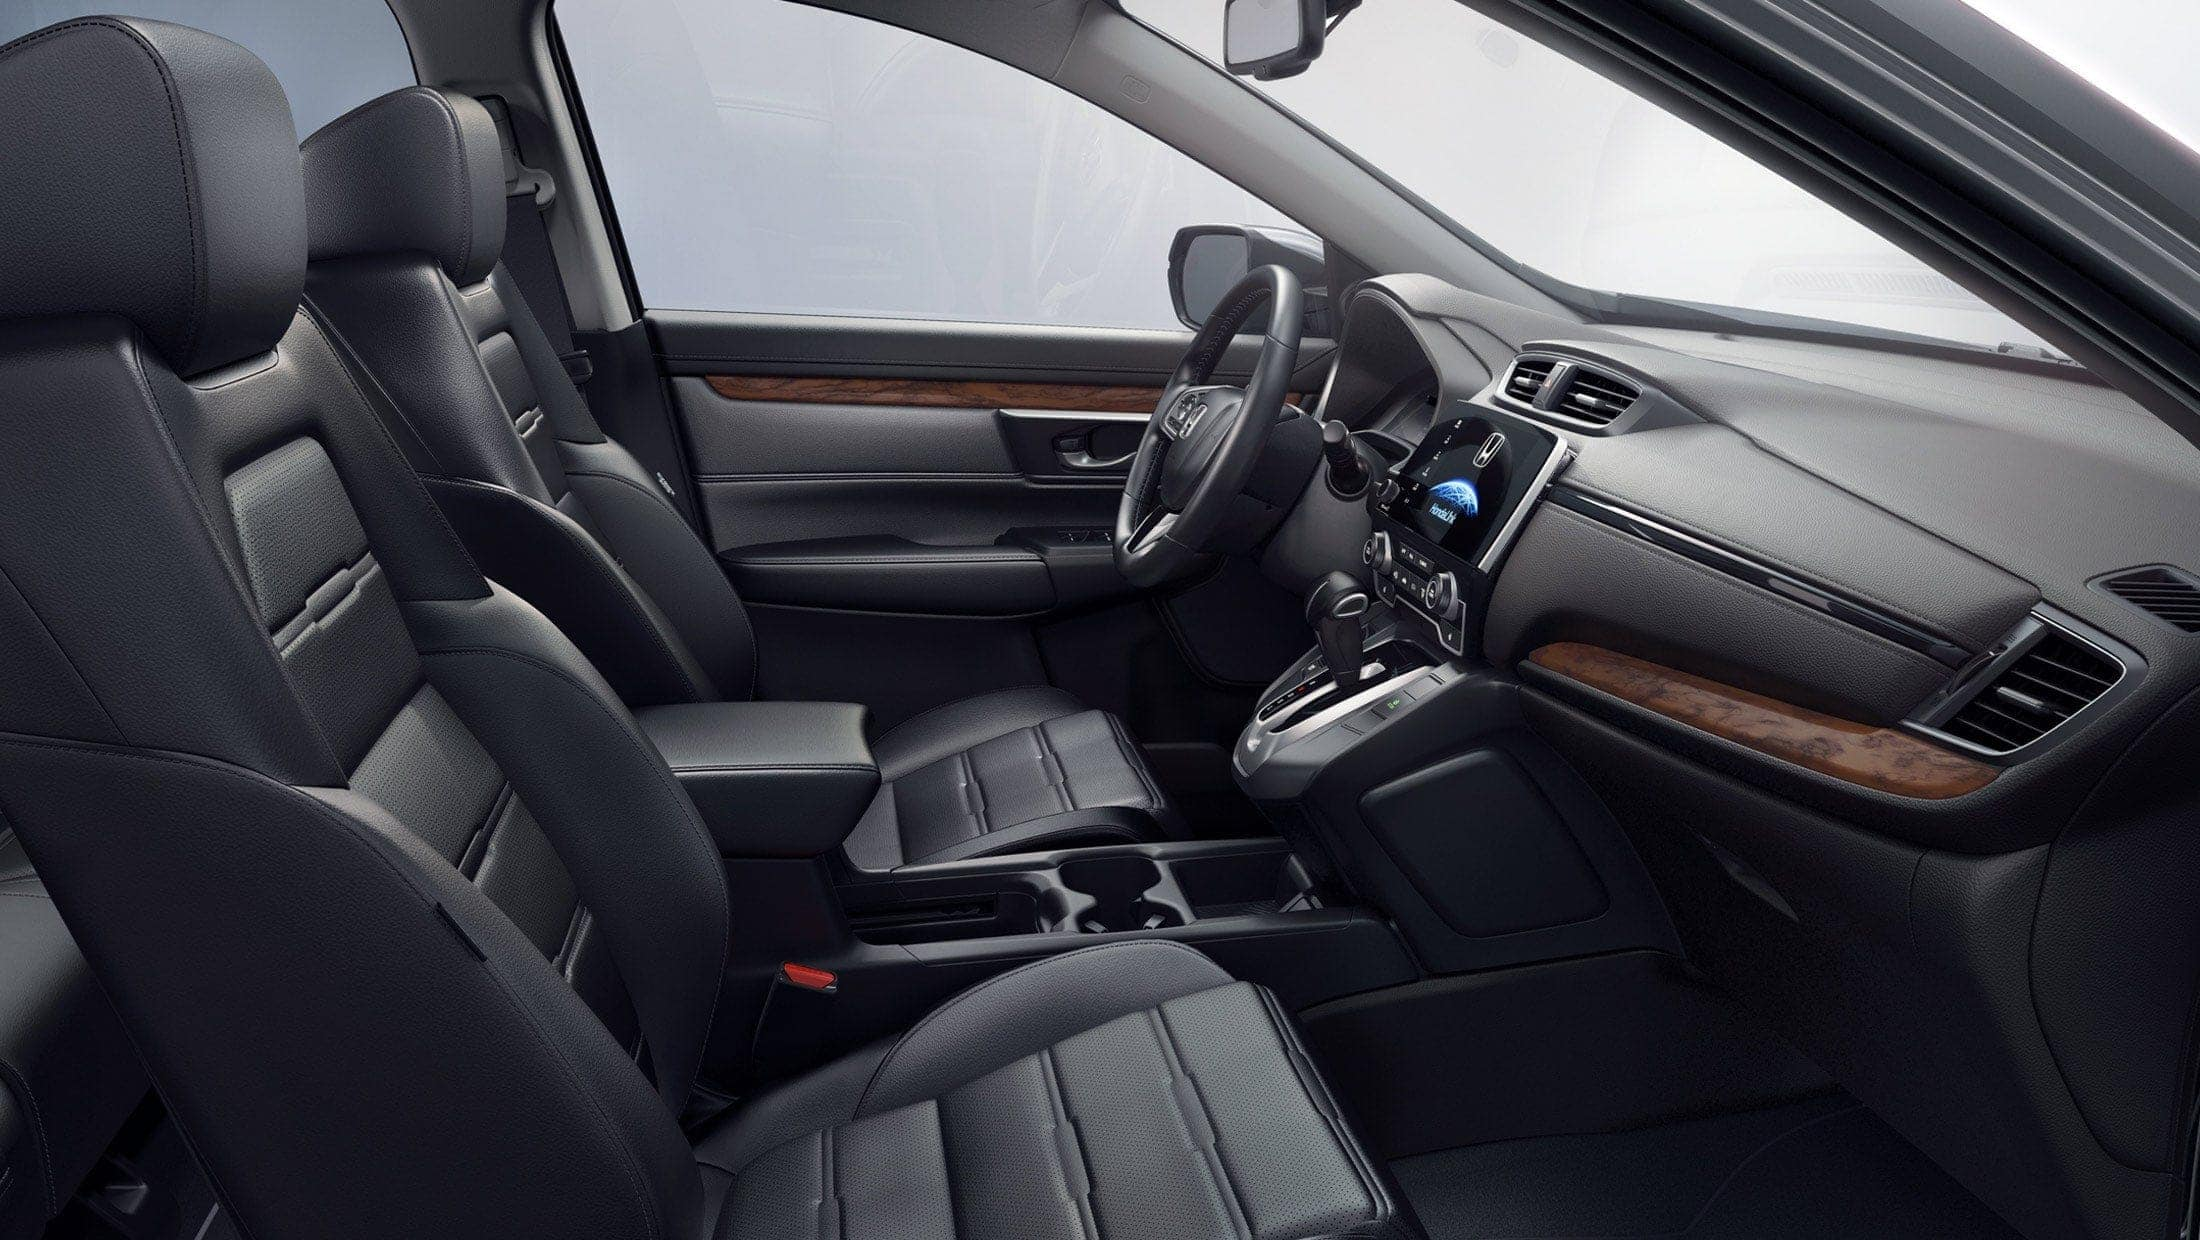 Full interior shot of the 2019 Honda CR-V with leather-trimmed interior.